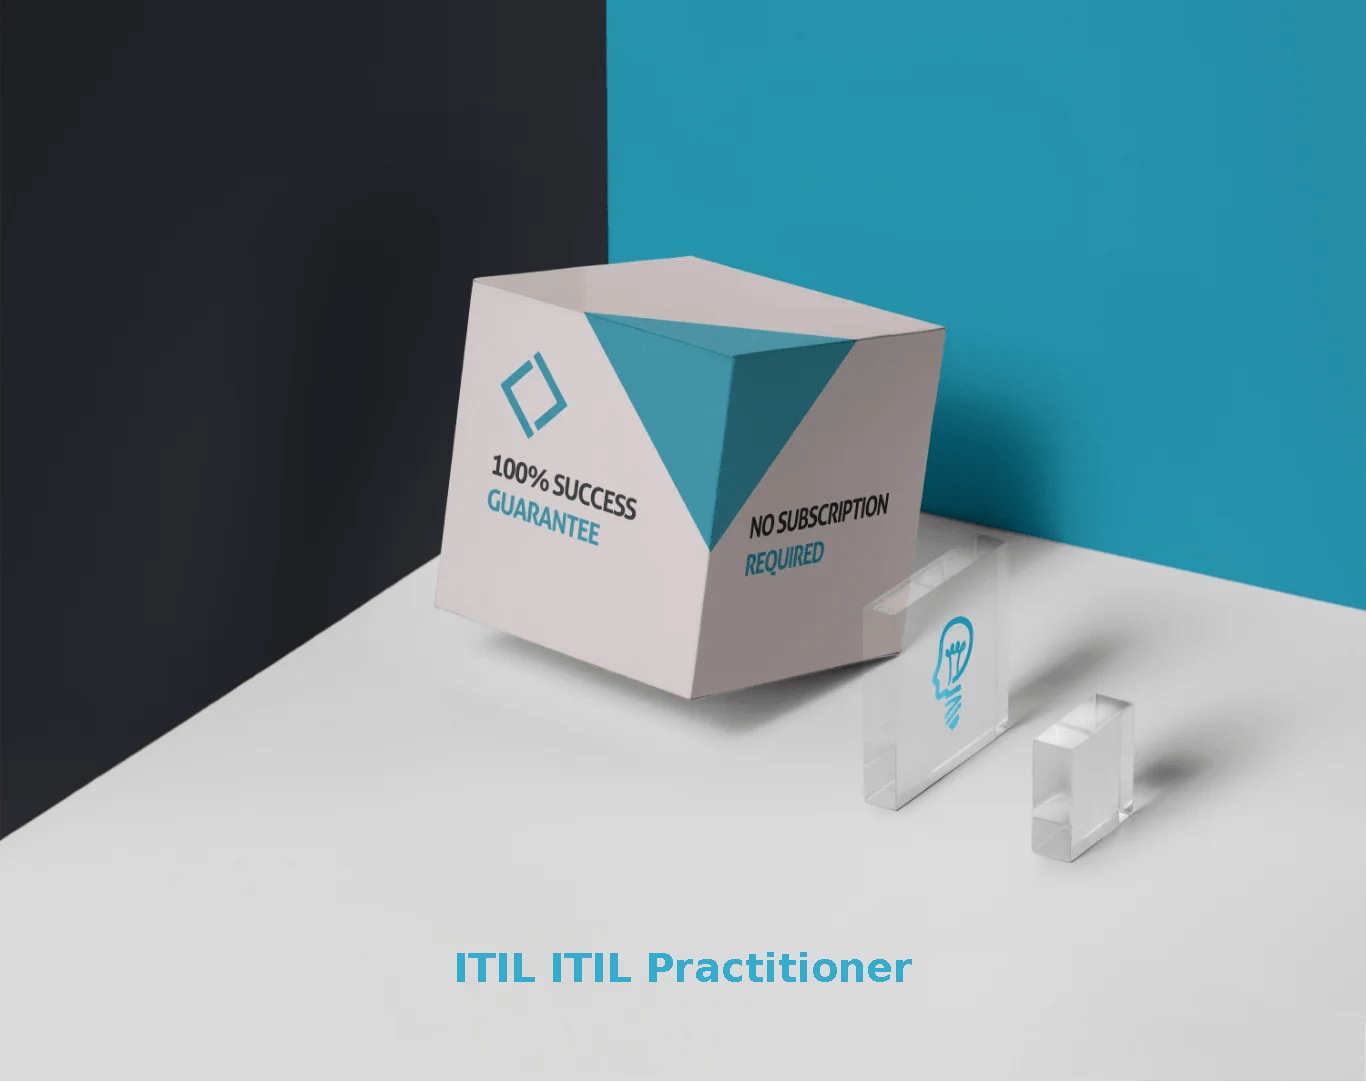 itil practitioner guidance pdf free download